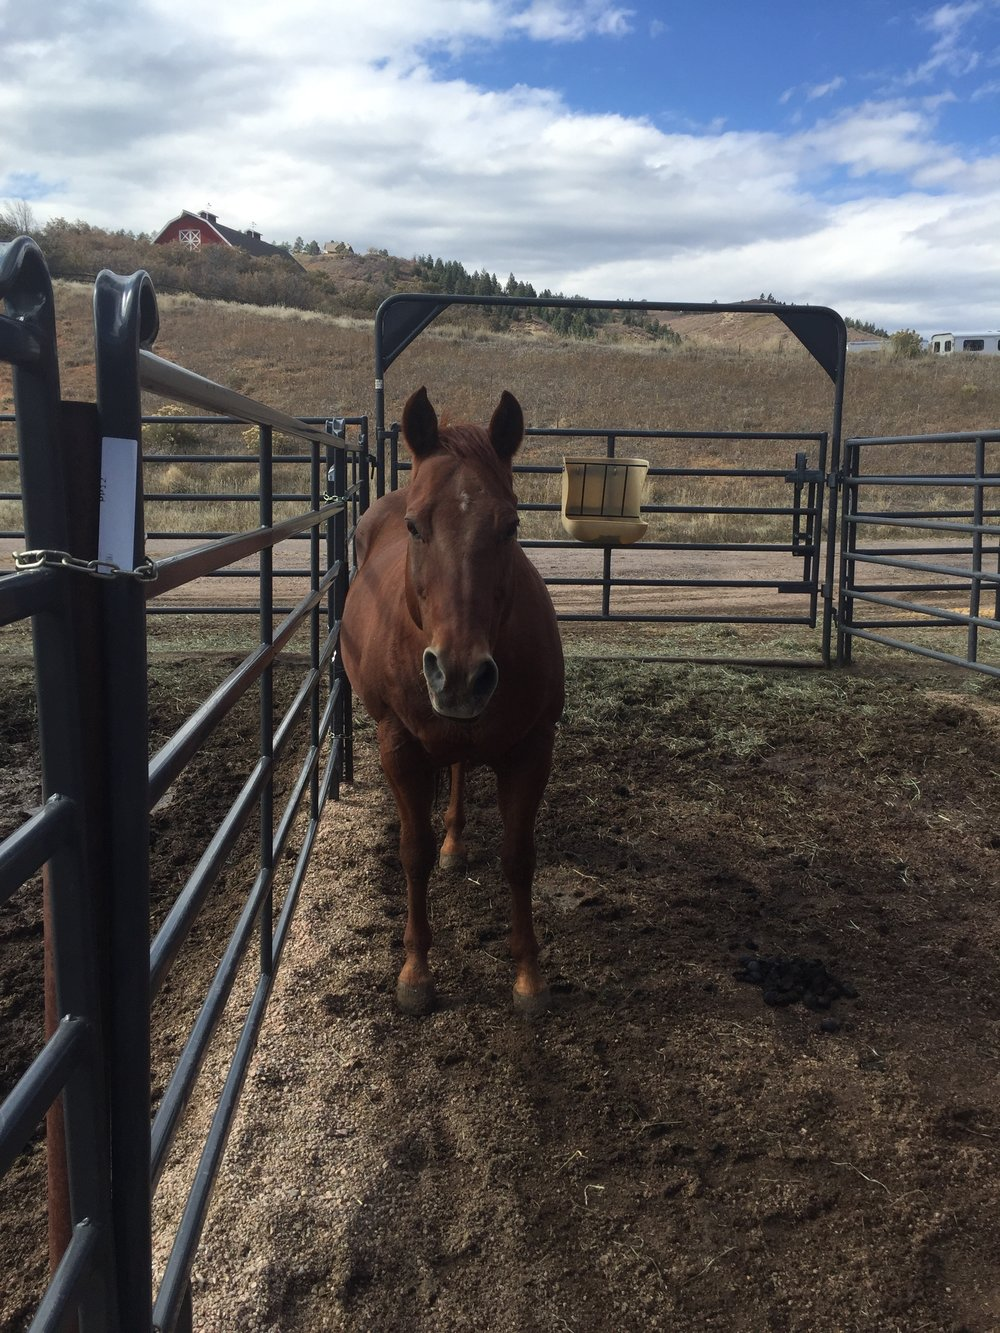 Bubba - Bubba is a 22 year old Quarter Horse. Back in his day, he was a champion cutting horse! Now he enjoys giving lessons, going on trail rides and occasionally chasing the flag.